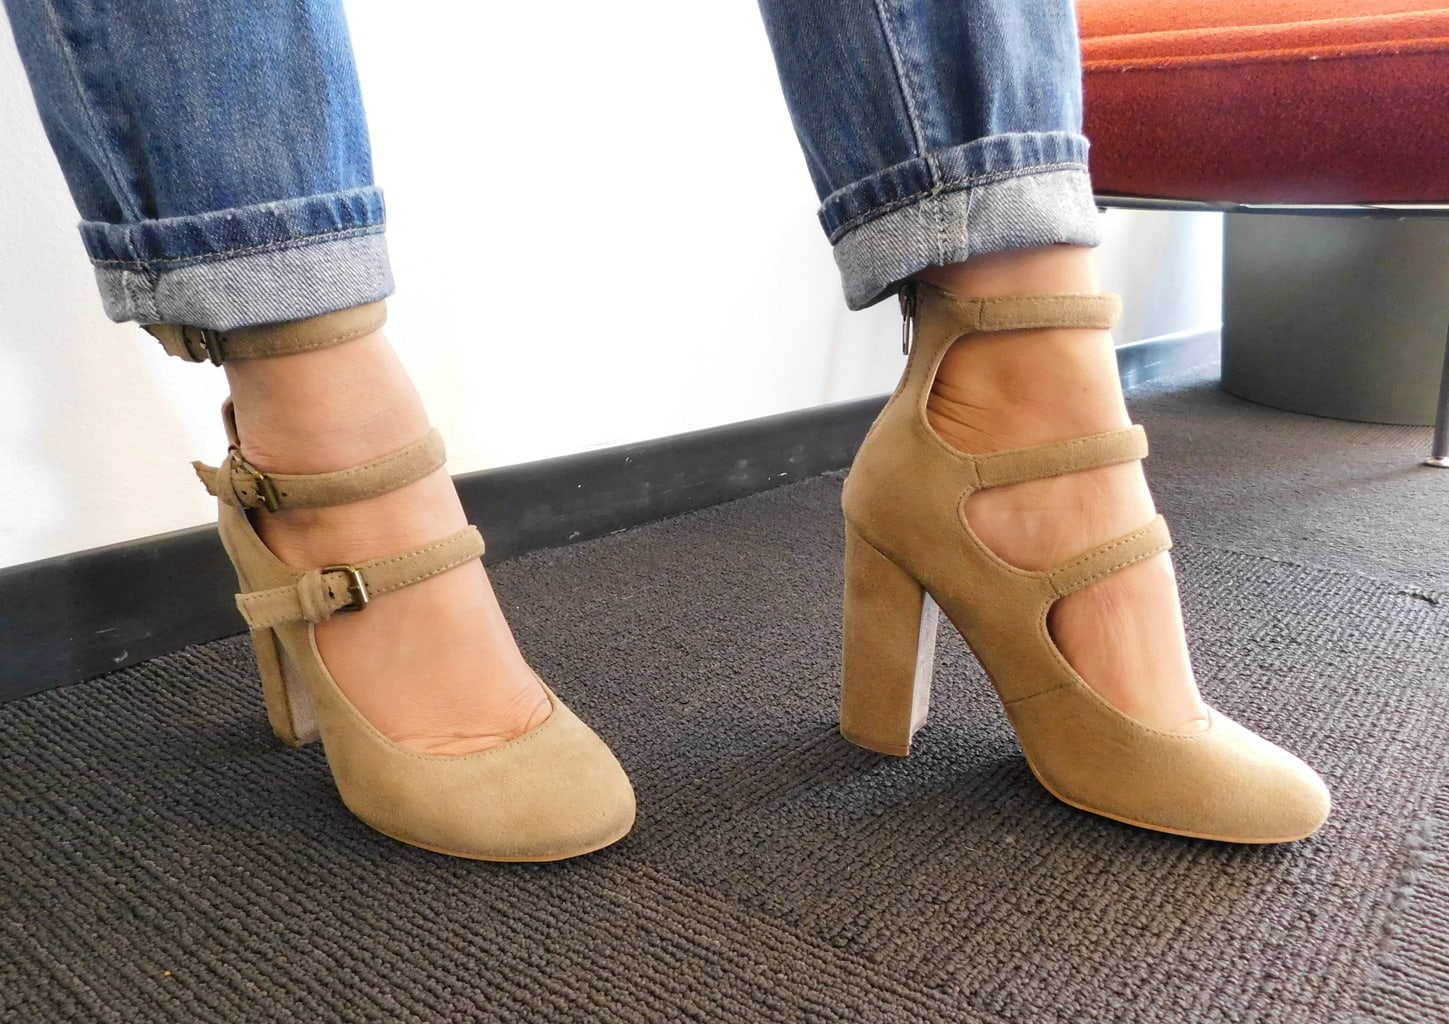 Lauren shows off her chunky-heeled mary jane inspired heels with three straps and silver buckles.